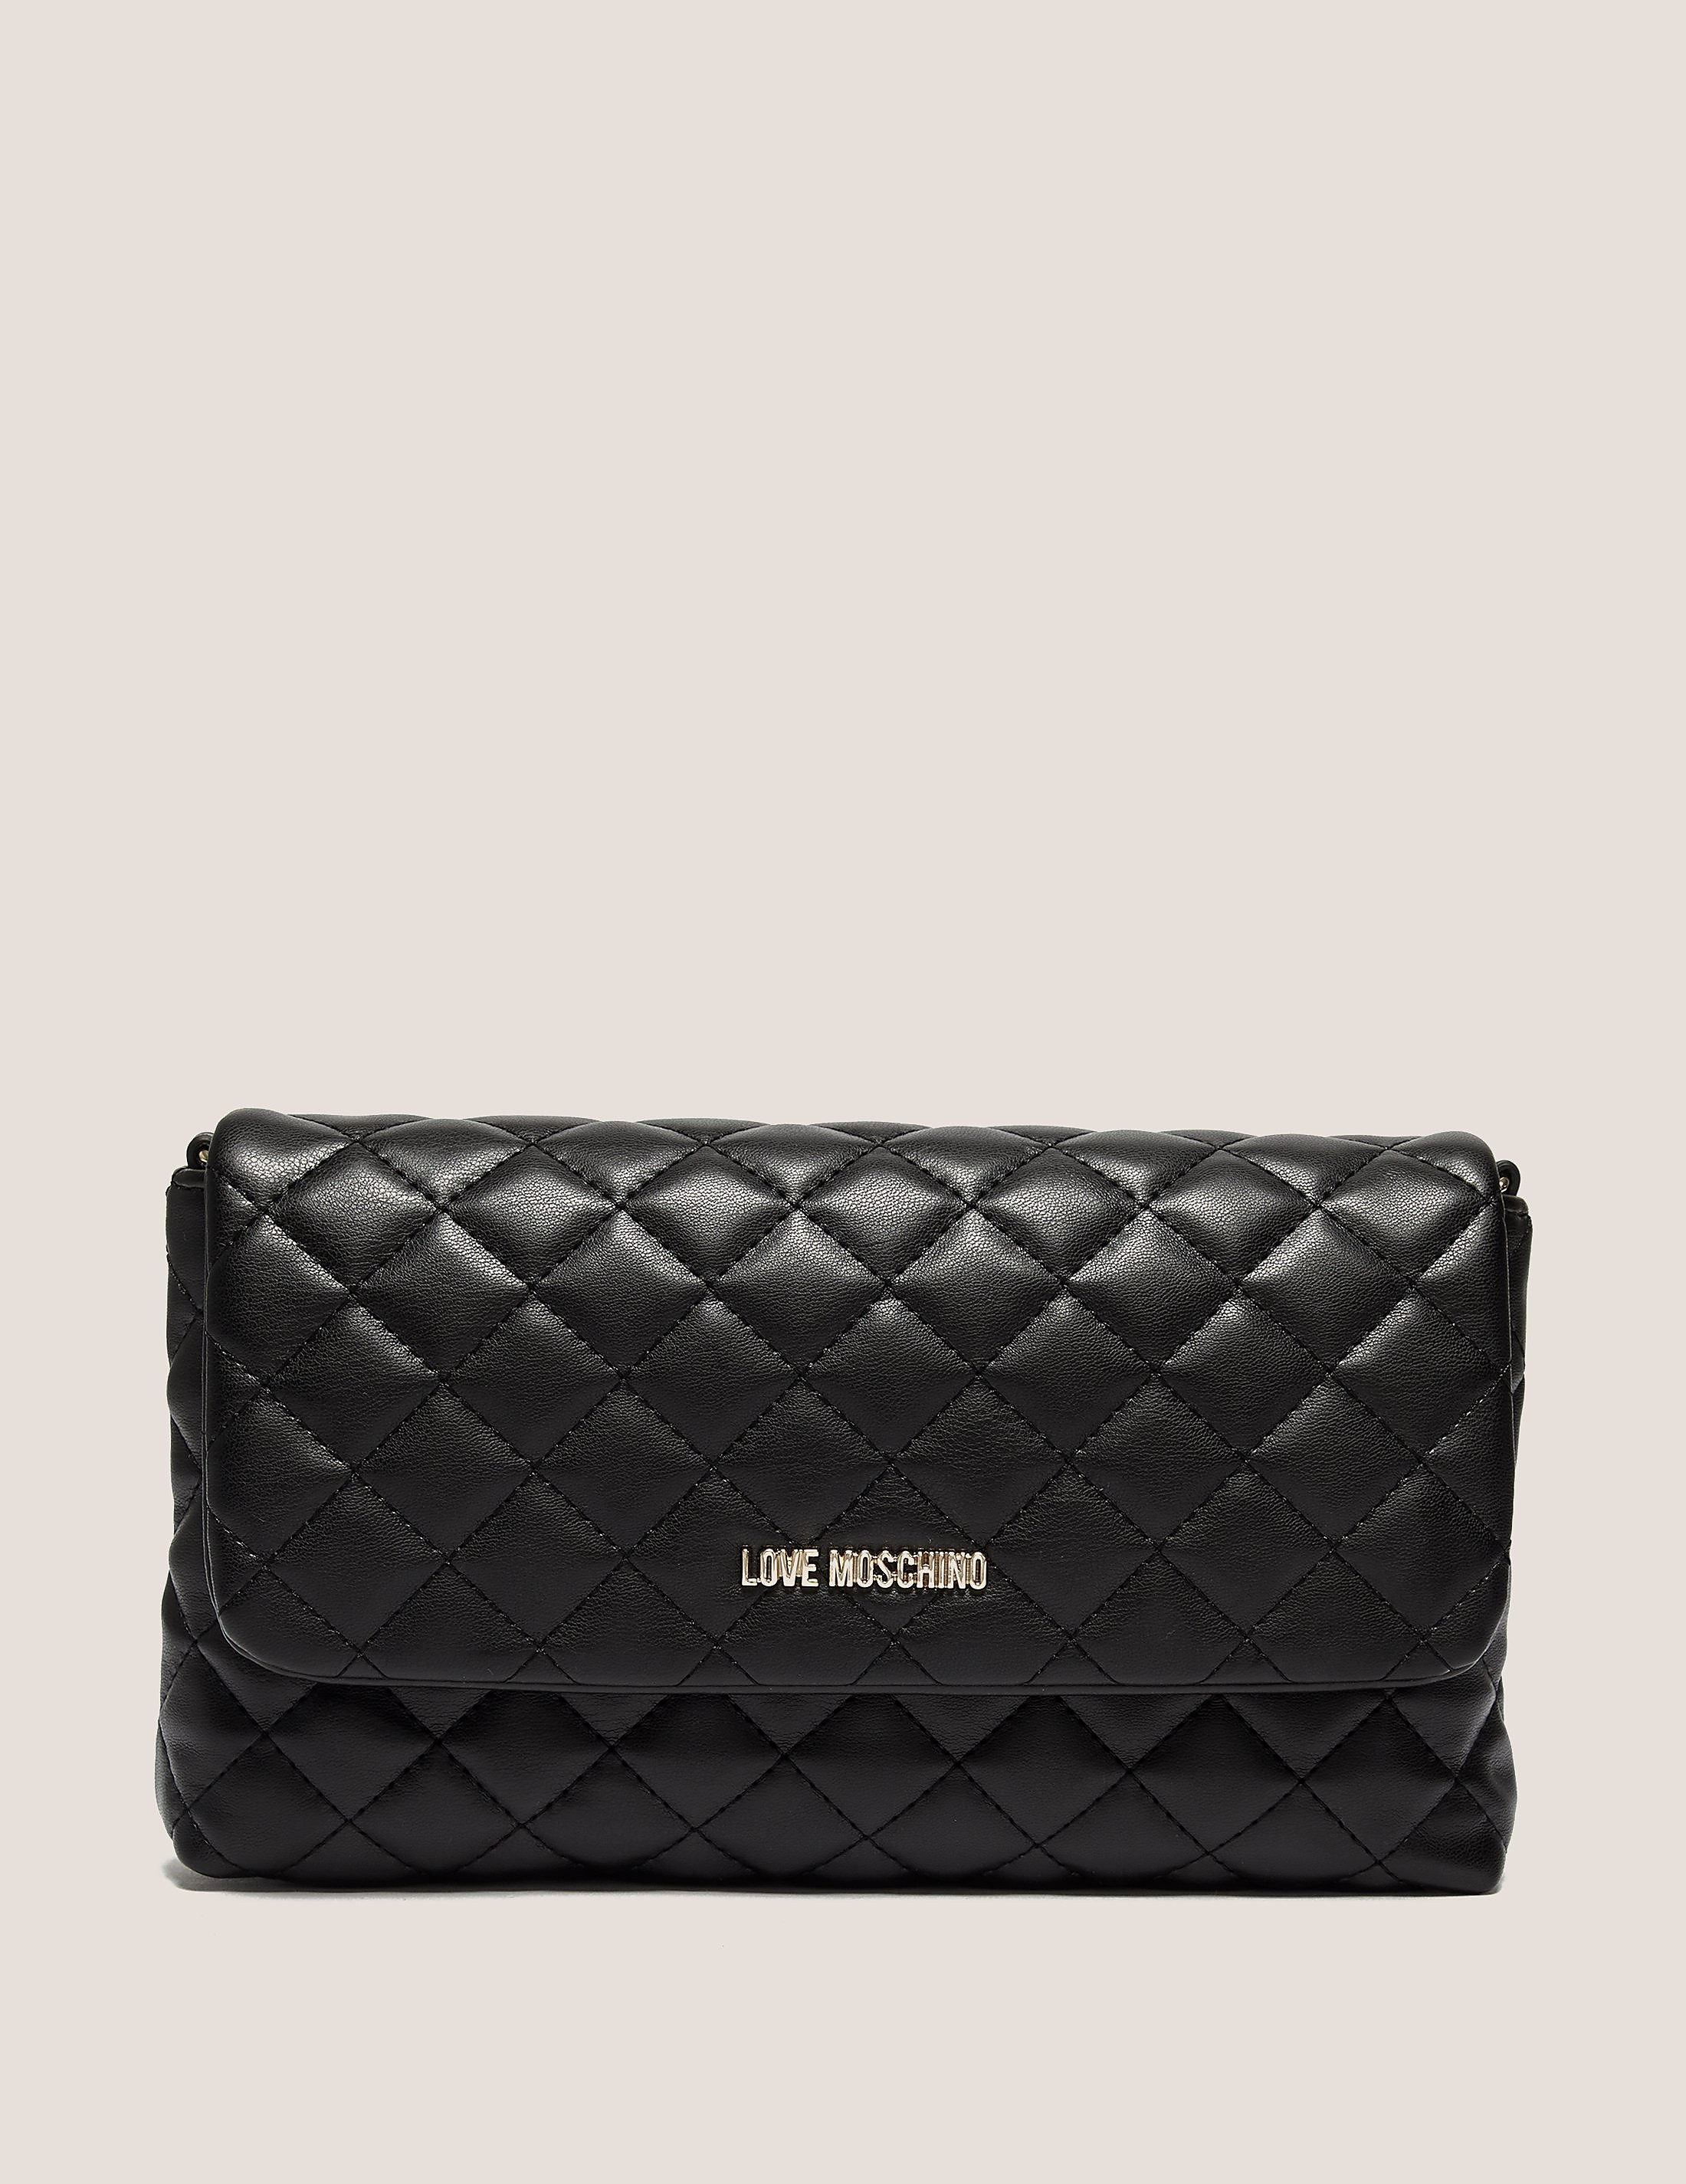 Love Moschino Mini Chain Quilted Bag